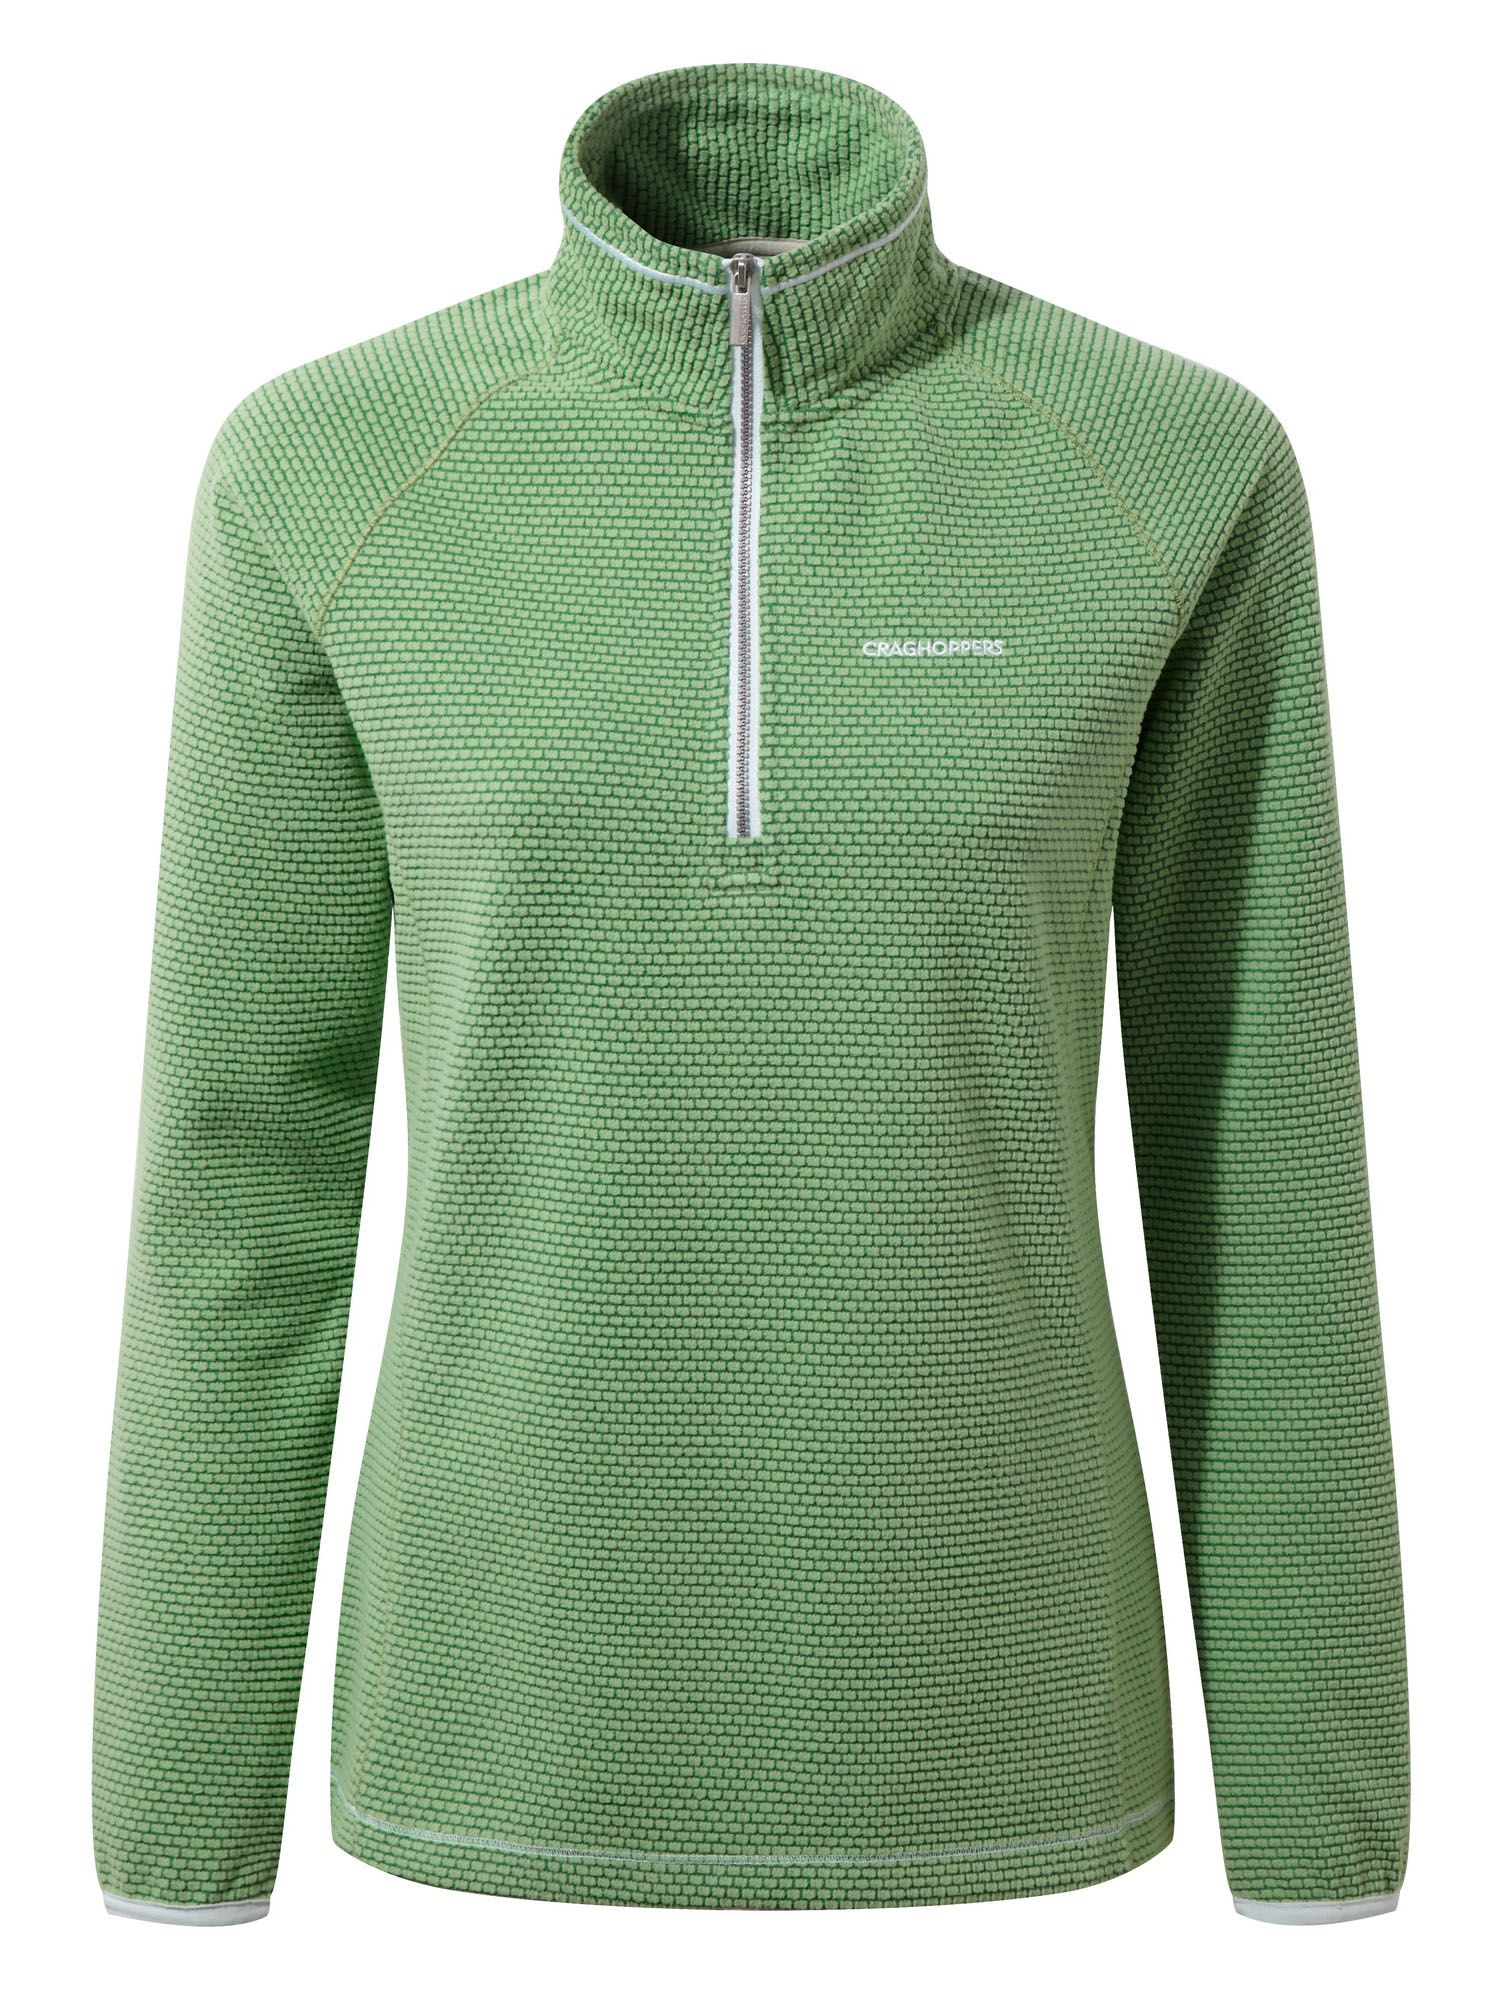 Craghoppers Hazelton Half Zip Fleece, Green